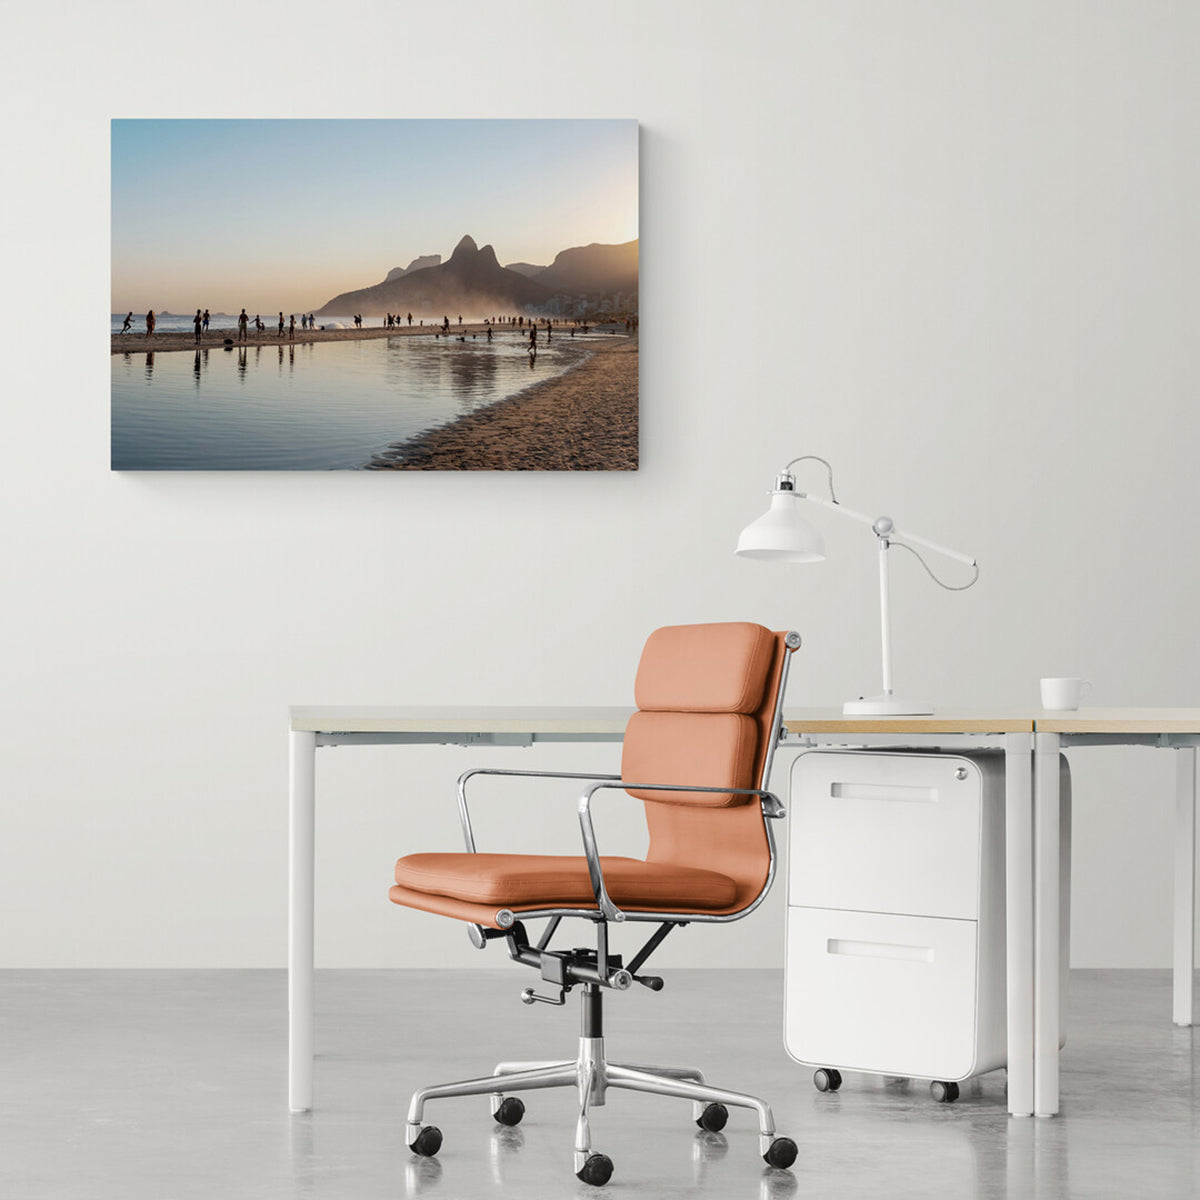 Photograph on Aluminium  of silhouettes of beachgoers at sunset on Ipanema Beach in an office setting